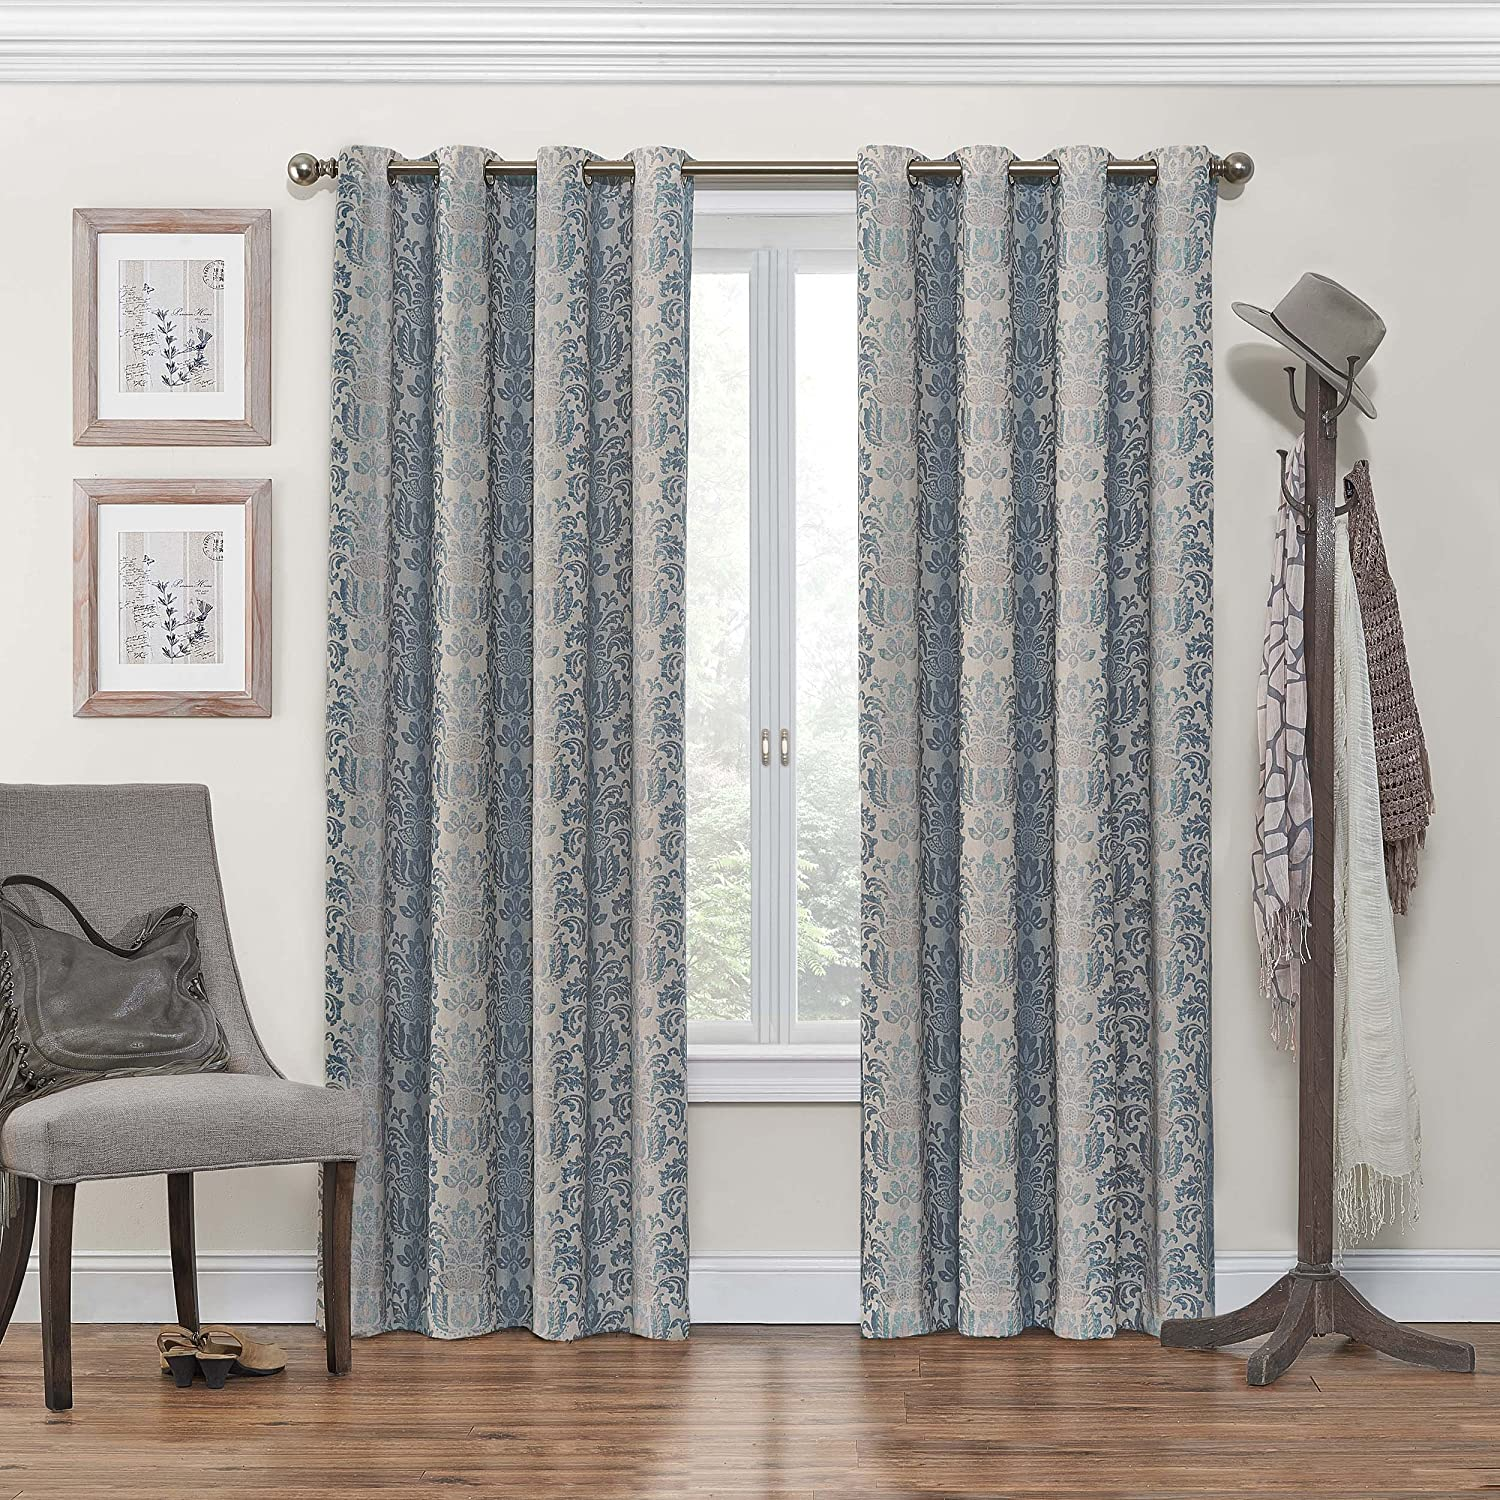 curtain curtains by dark window kitchen panel dp single blue blackout amazon eclipse inch fresno com home